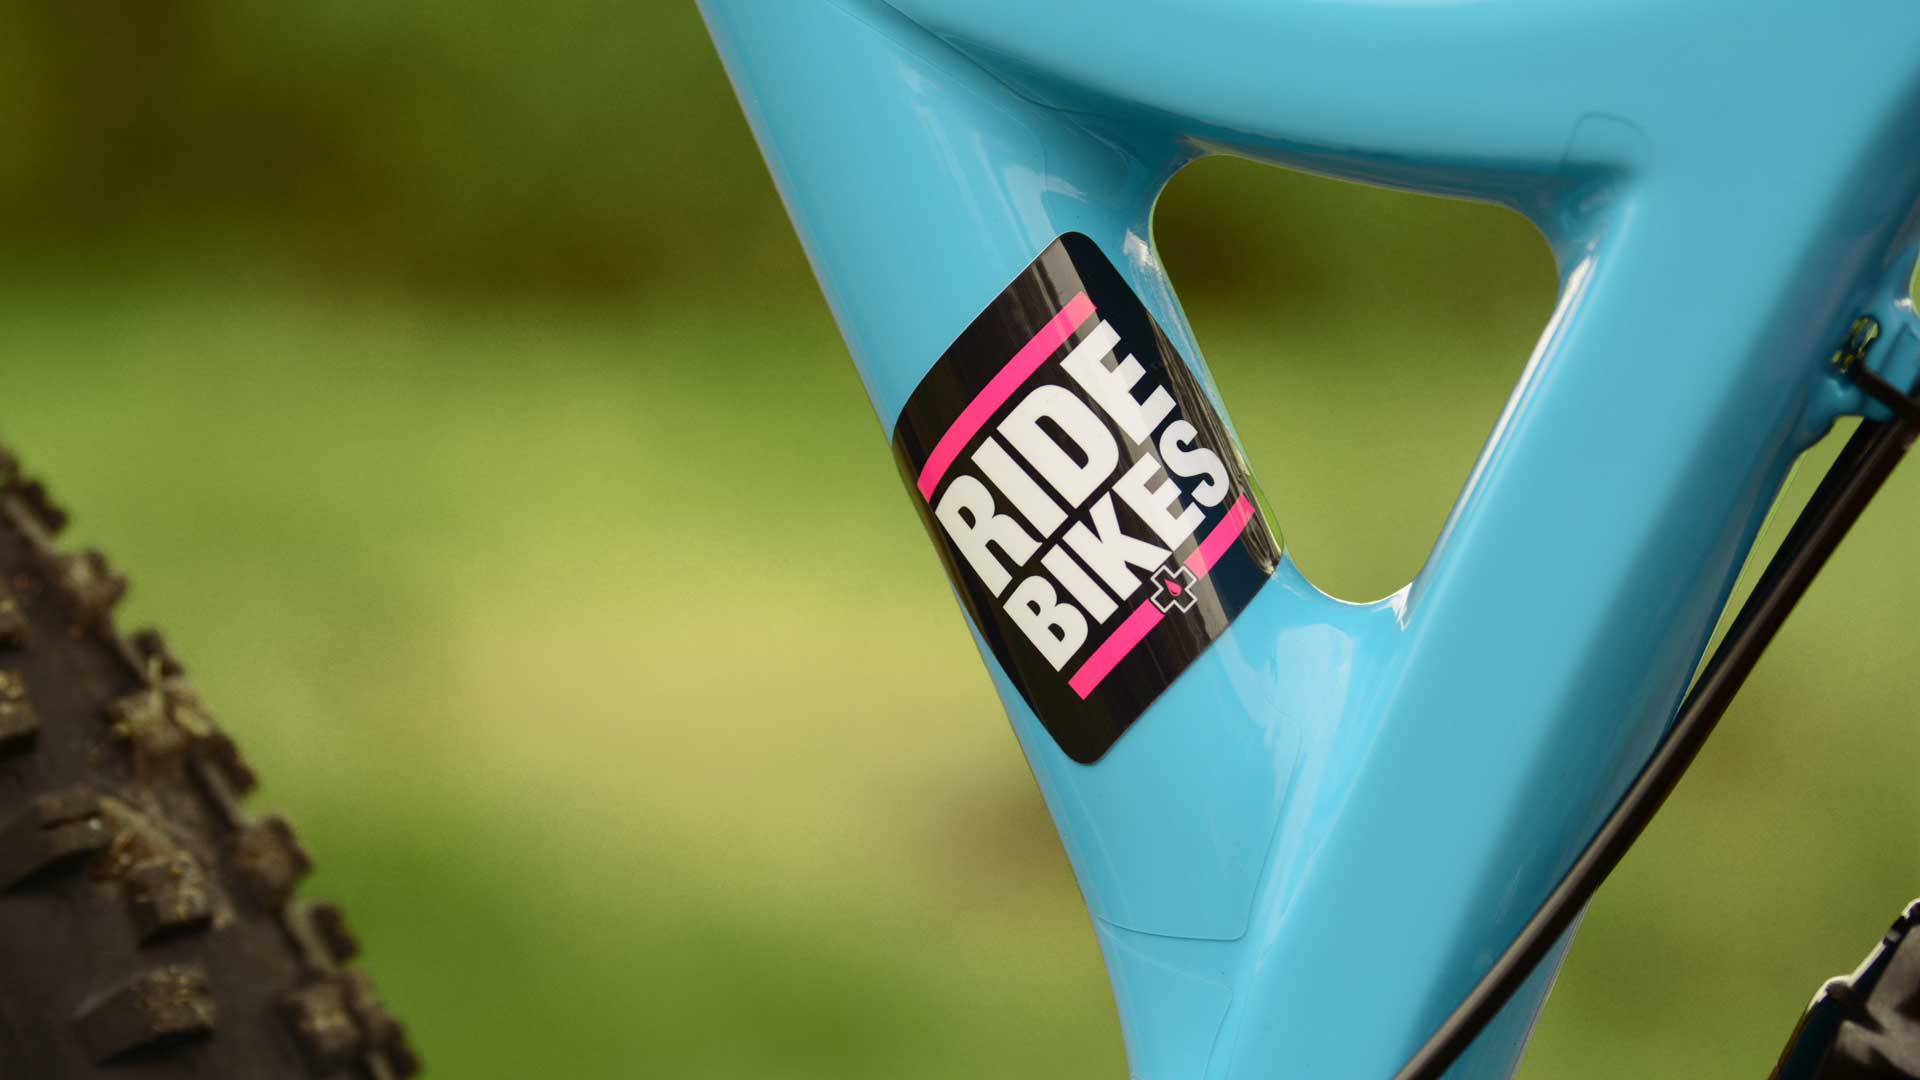 Ride bikes sticker on bike frame